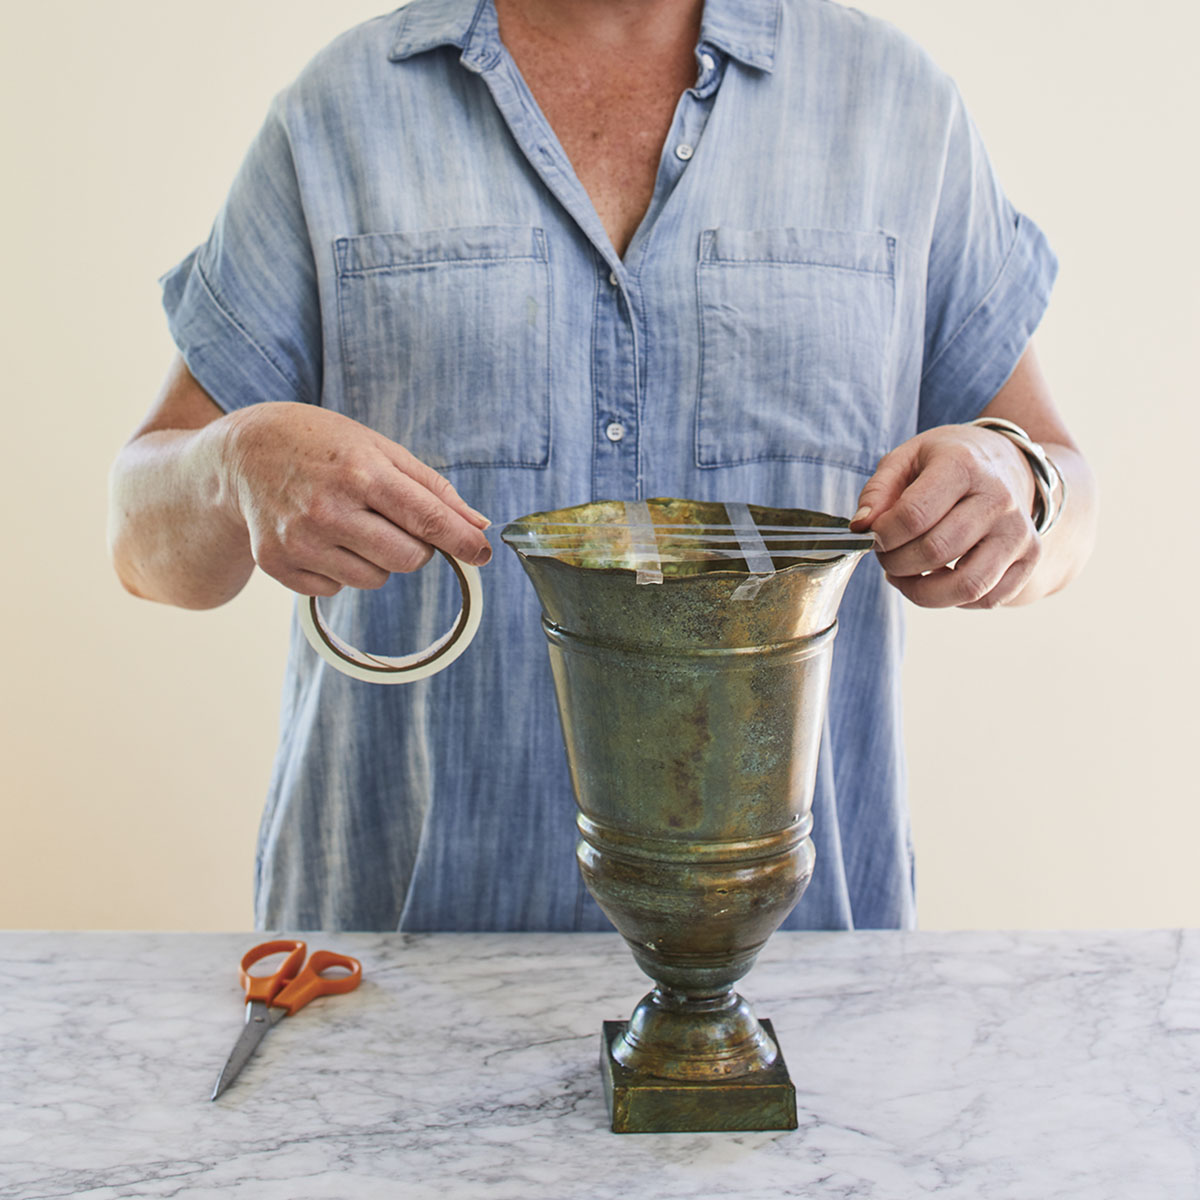 floral designer Kirk Whitfield demonstrates how to make a tape grid on the top of a flower vase (step 1)